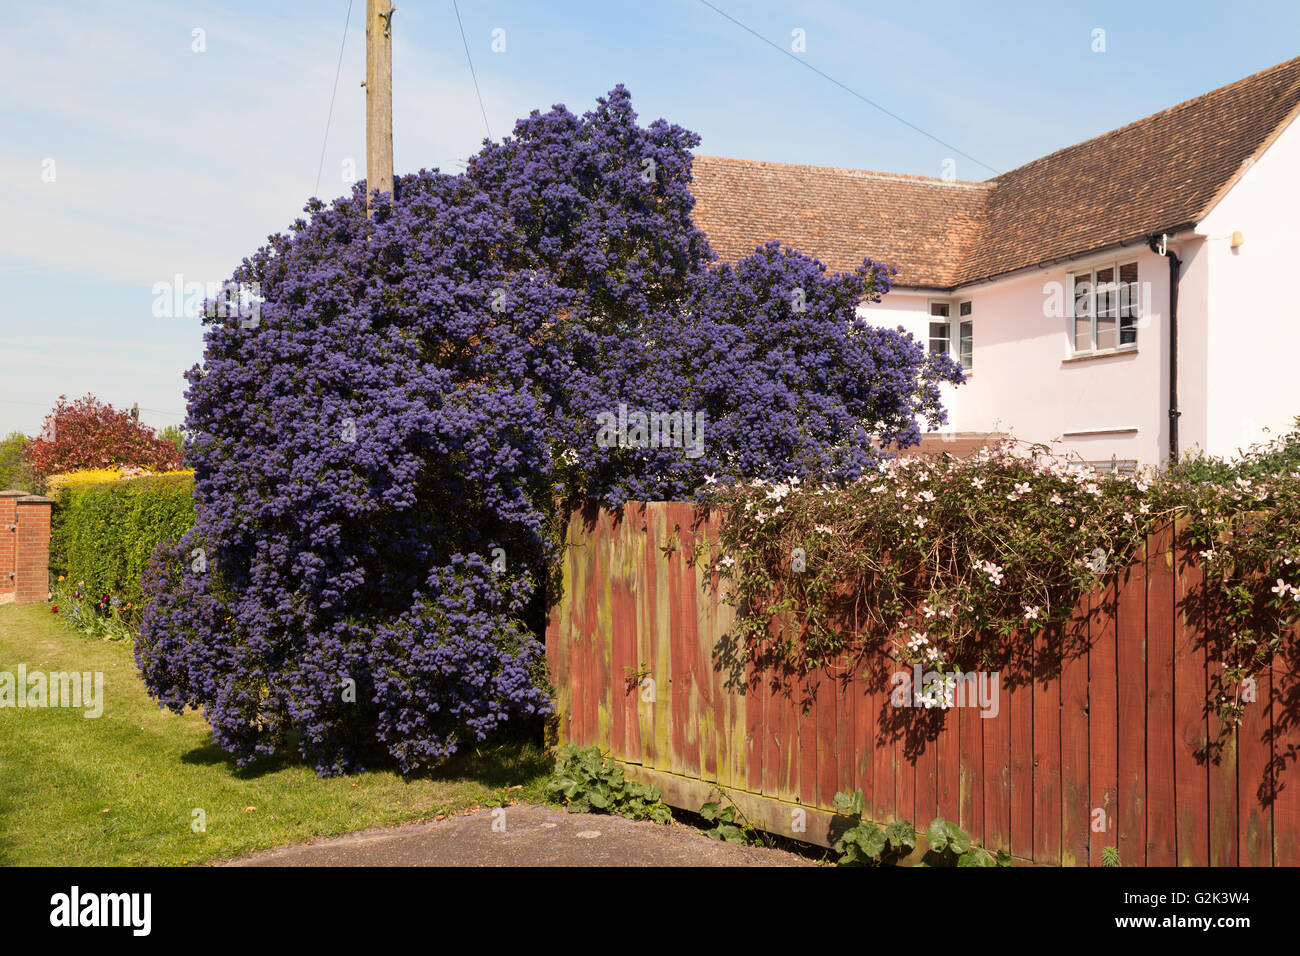 A large Ceanothus Concha or Californian Lilac shrub in full flower, in May, UK - Stock Image